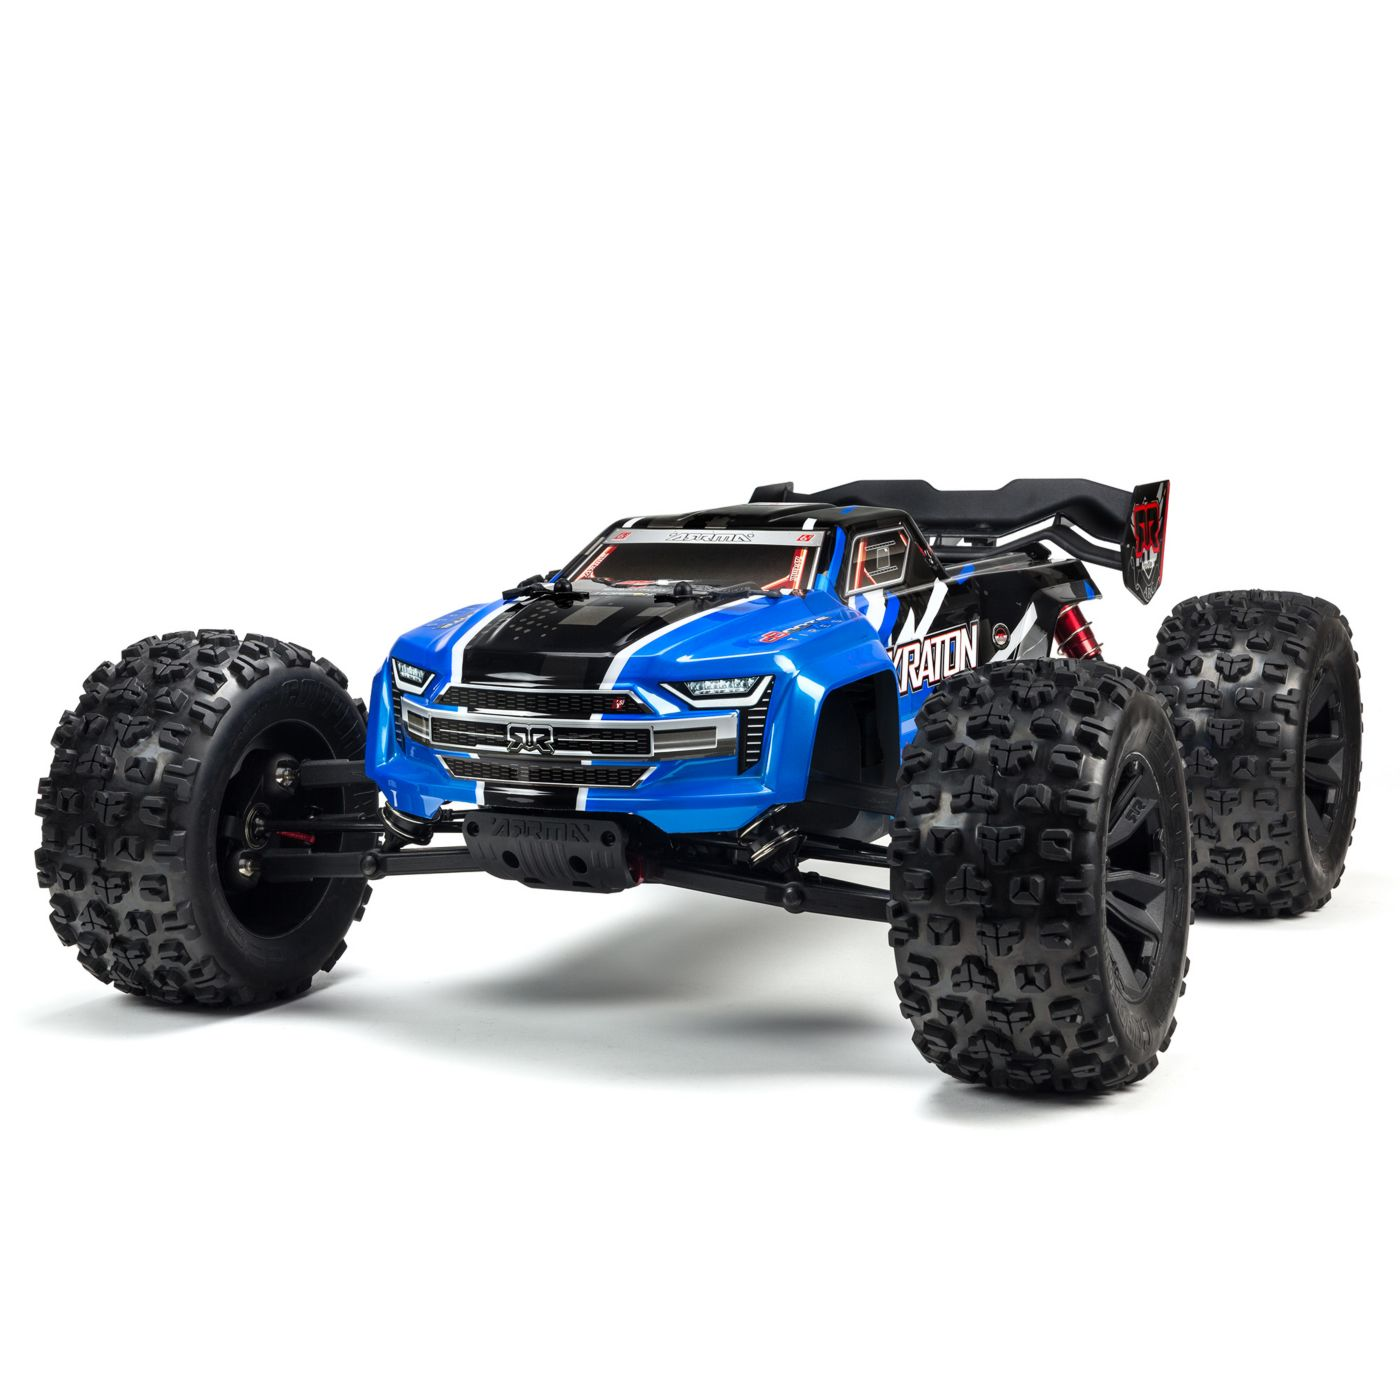 ARRMA 1/8 KRATON 6S BLX 4WD Brushless Speed Monster Truck with Spektrum RTR, Blue